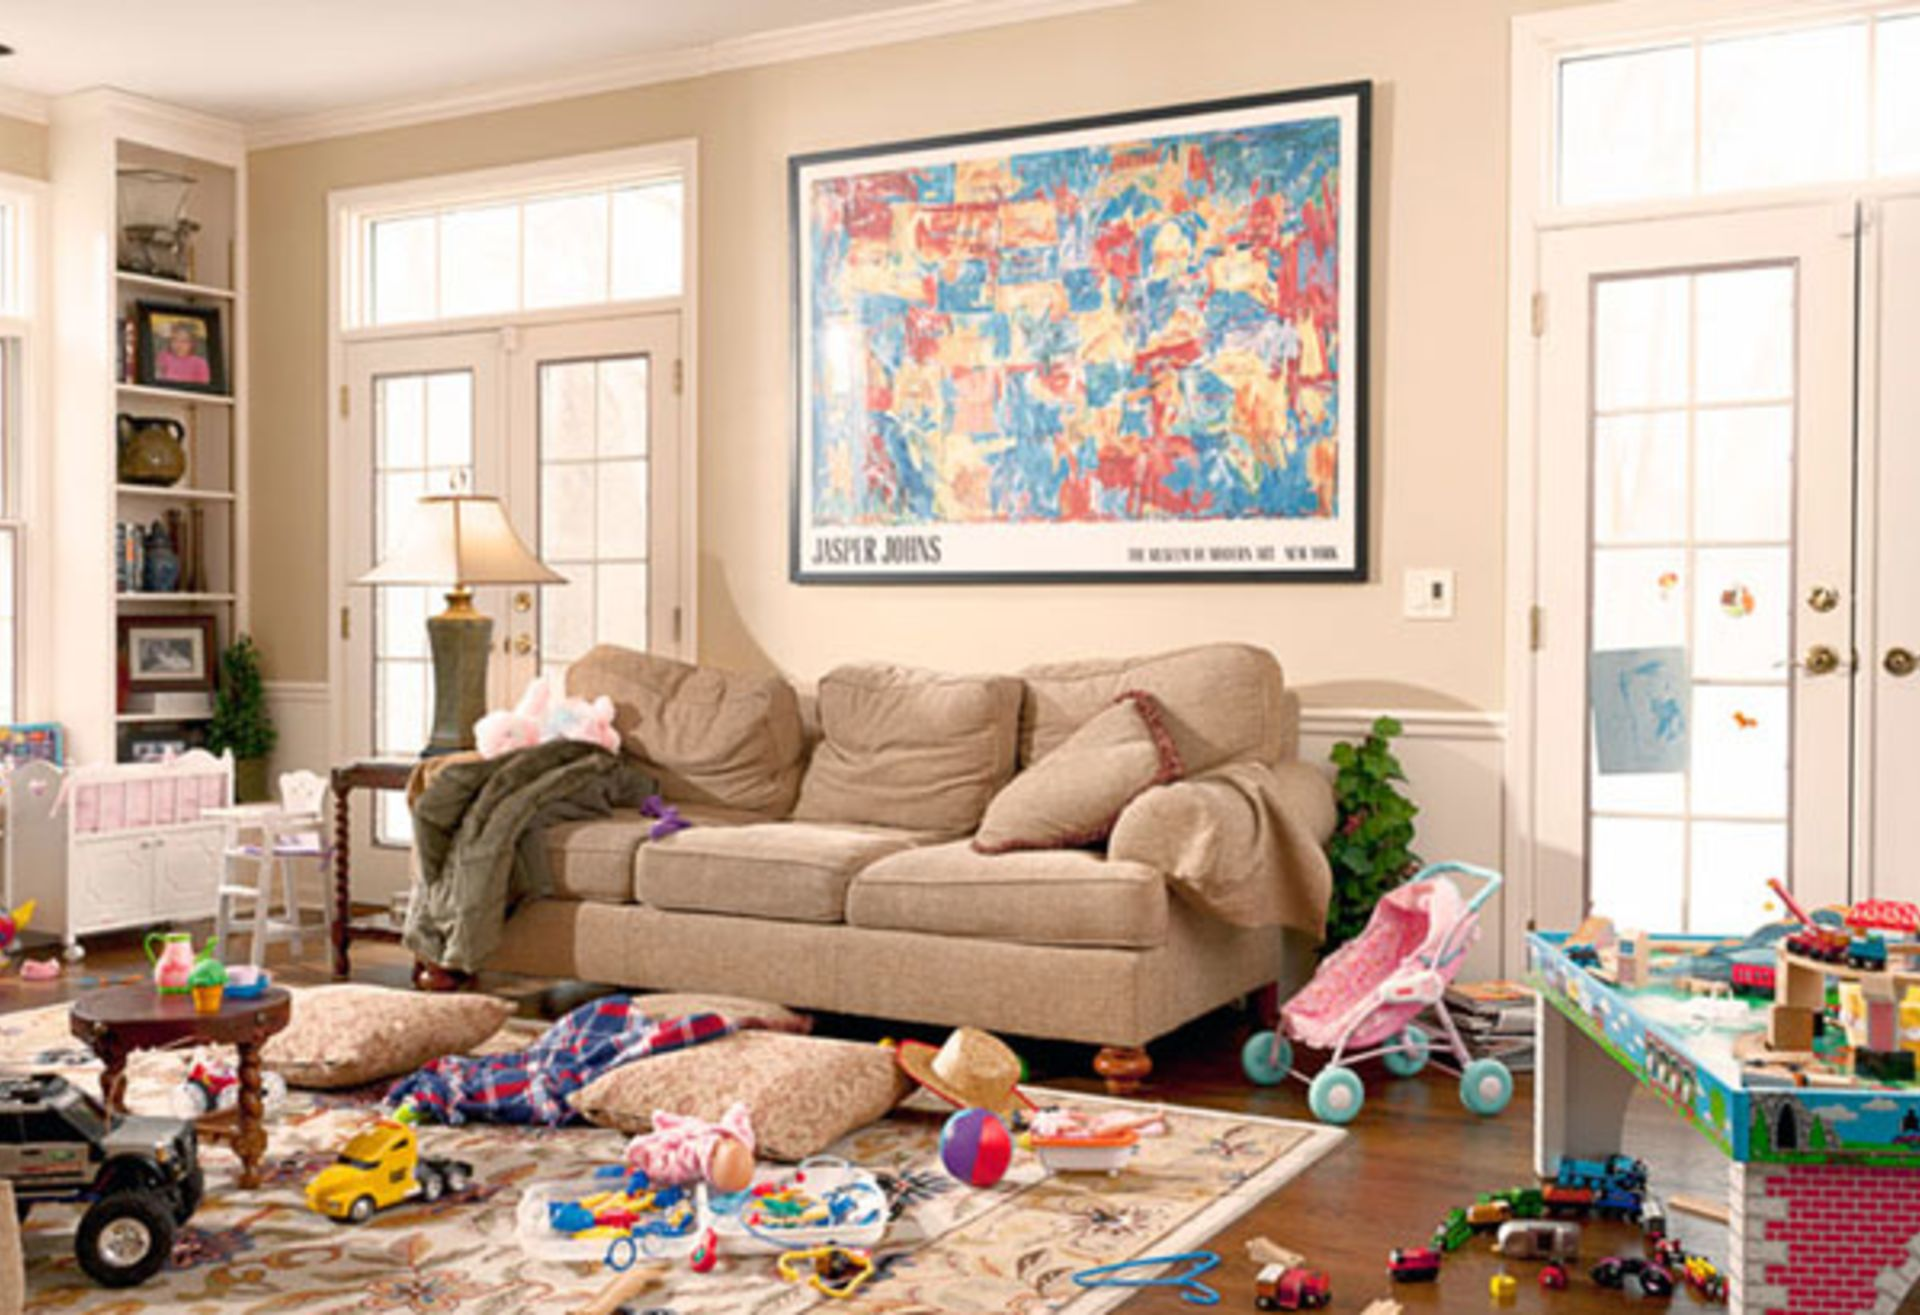 How to Declutter Before an Open House